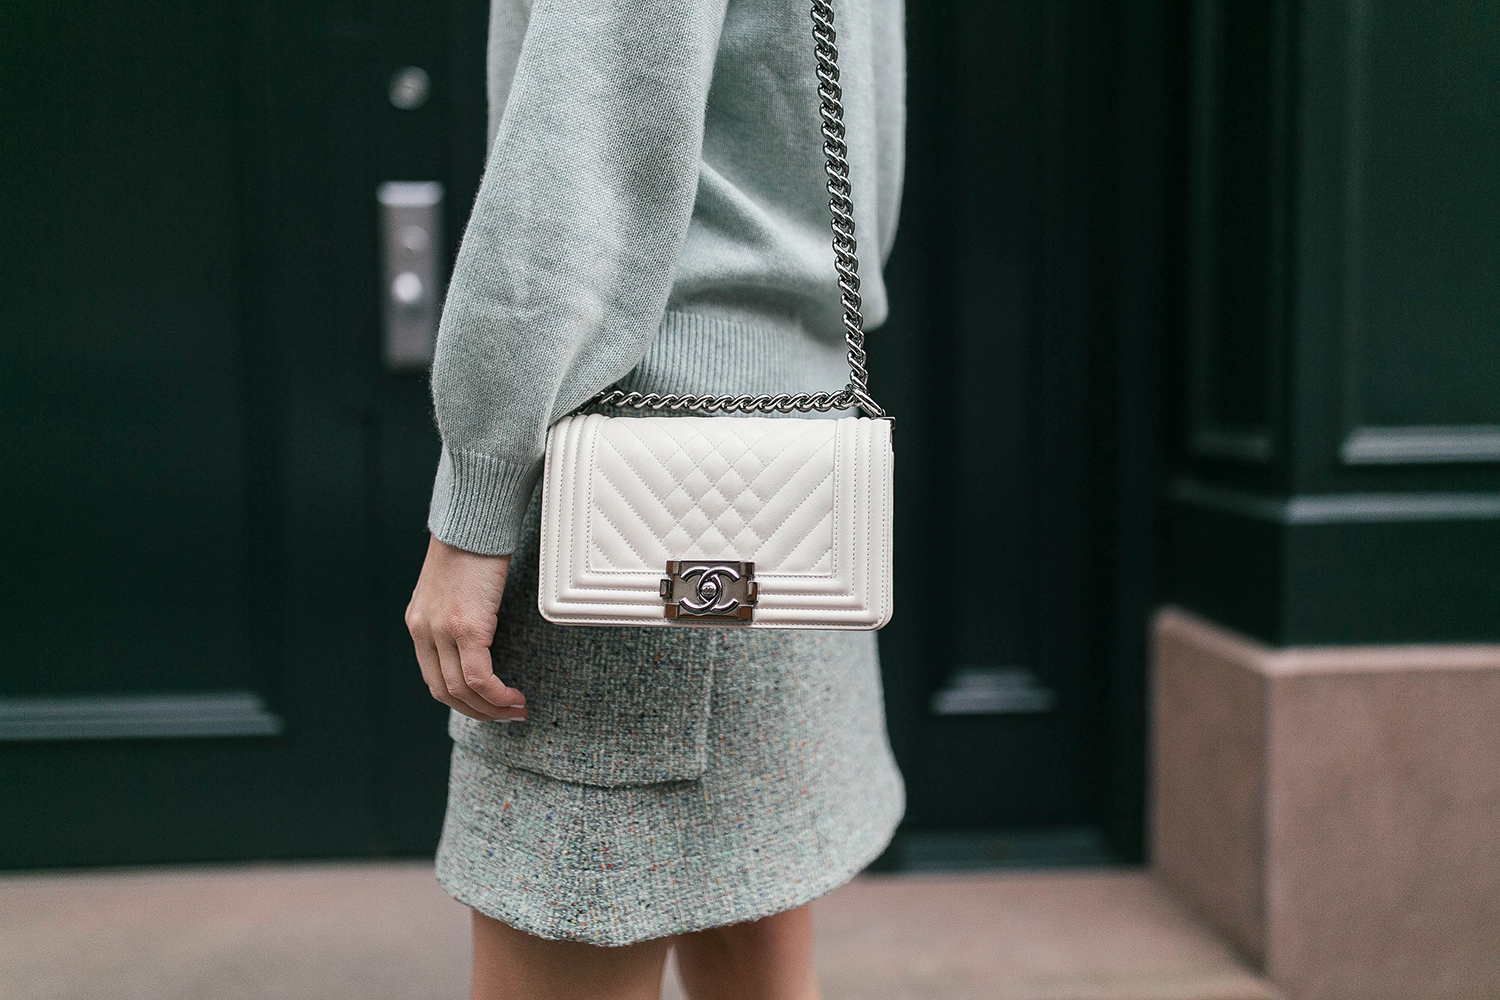 COS Cashmere Sweater + Tweed Skirt | The Style Scribe